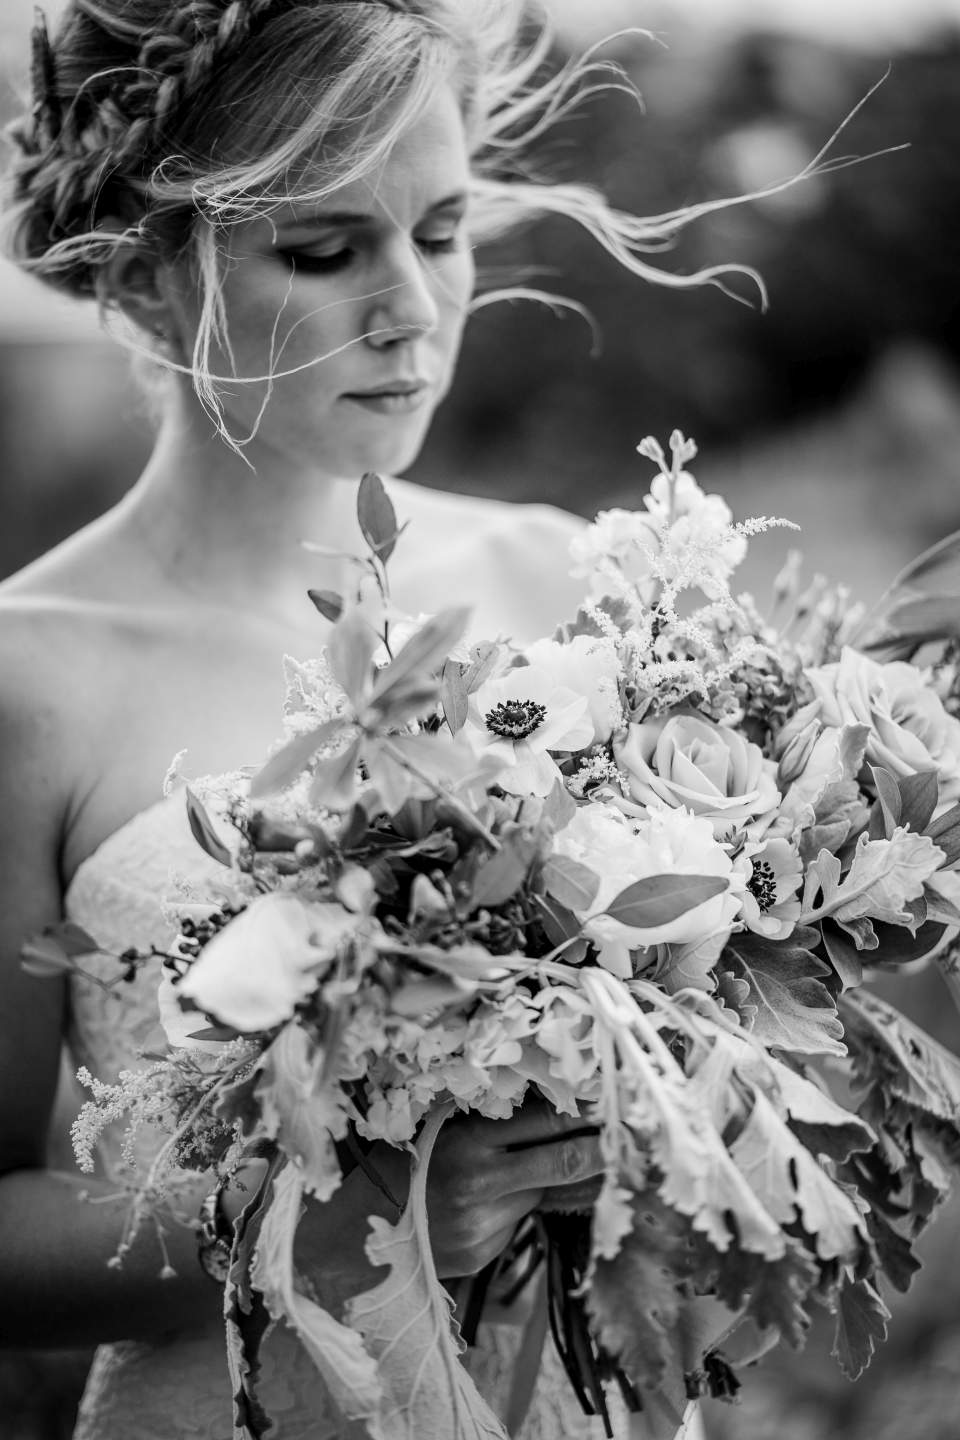 bride looking at flowers while her hair blows in the wind